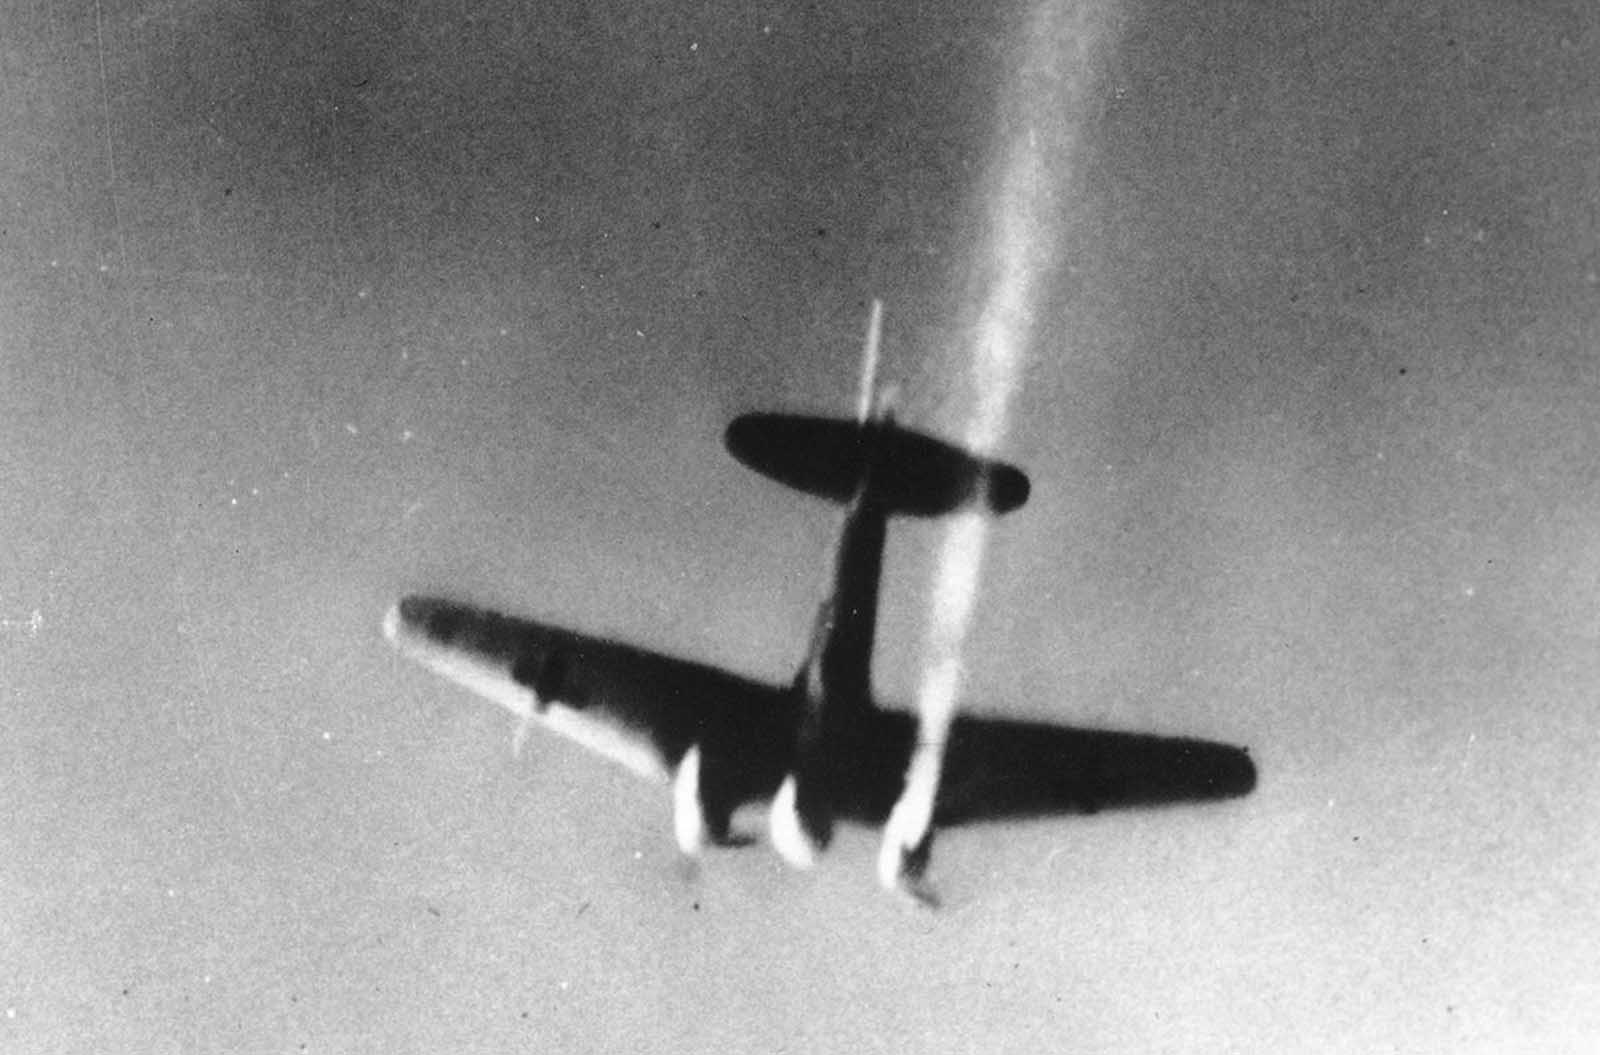 A German bomber, with its starboard engine on fire, goes down over an unknown location, during World War II, in November, 1941.